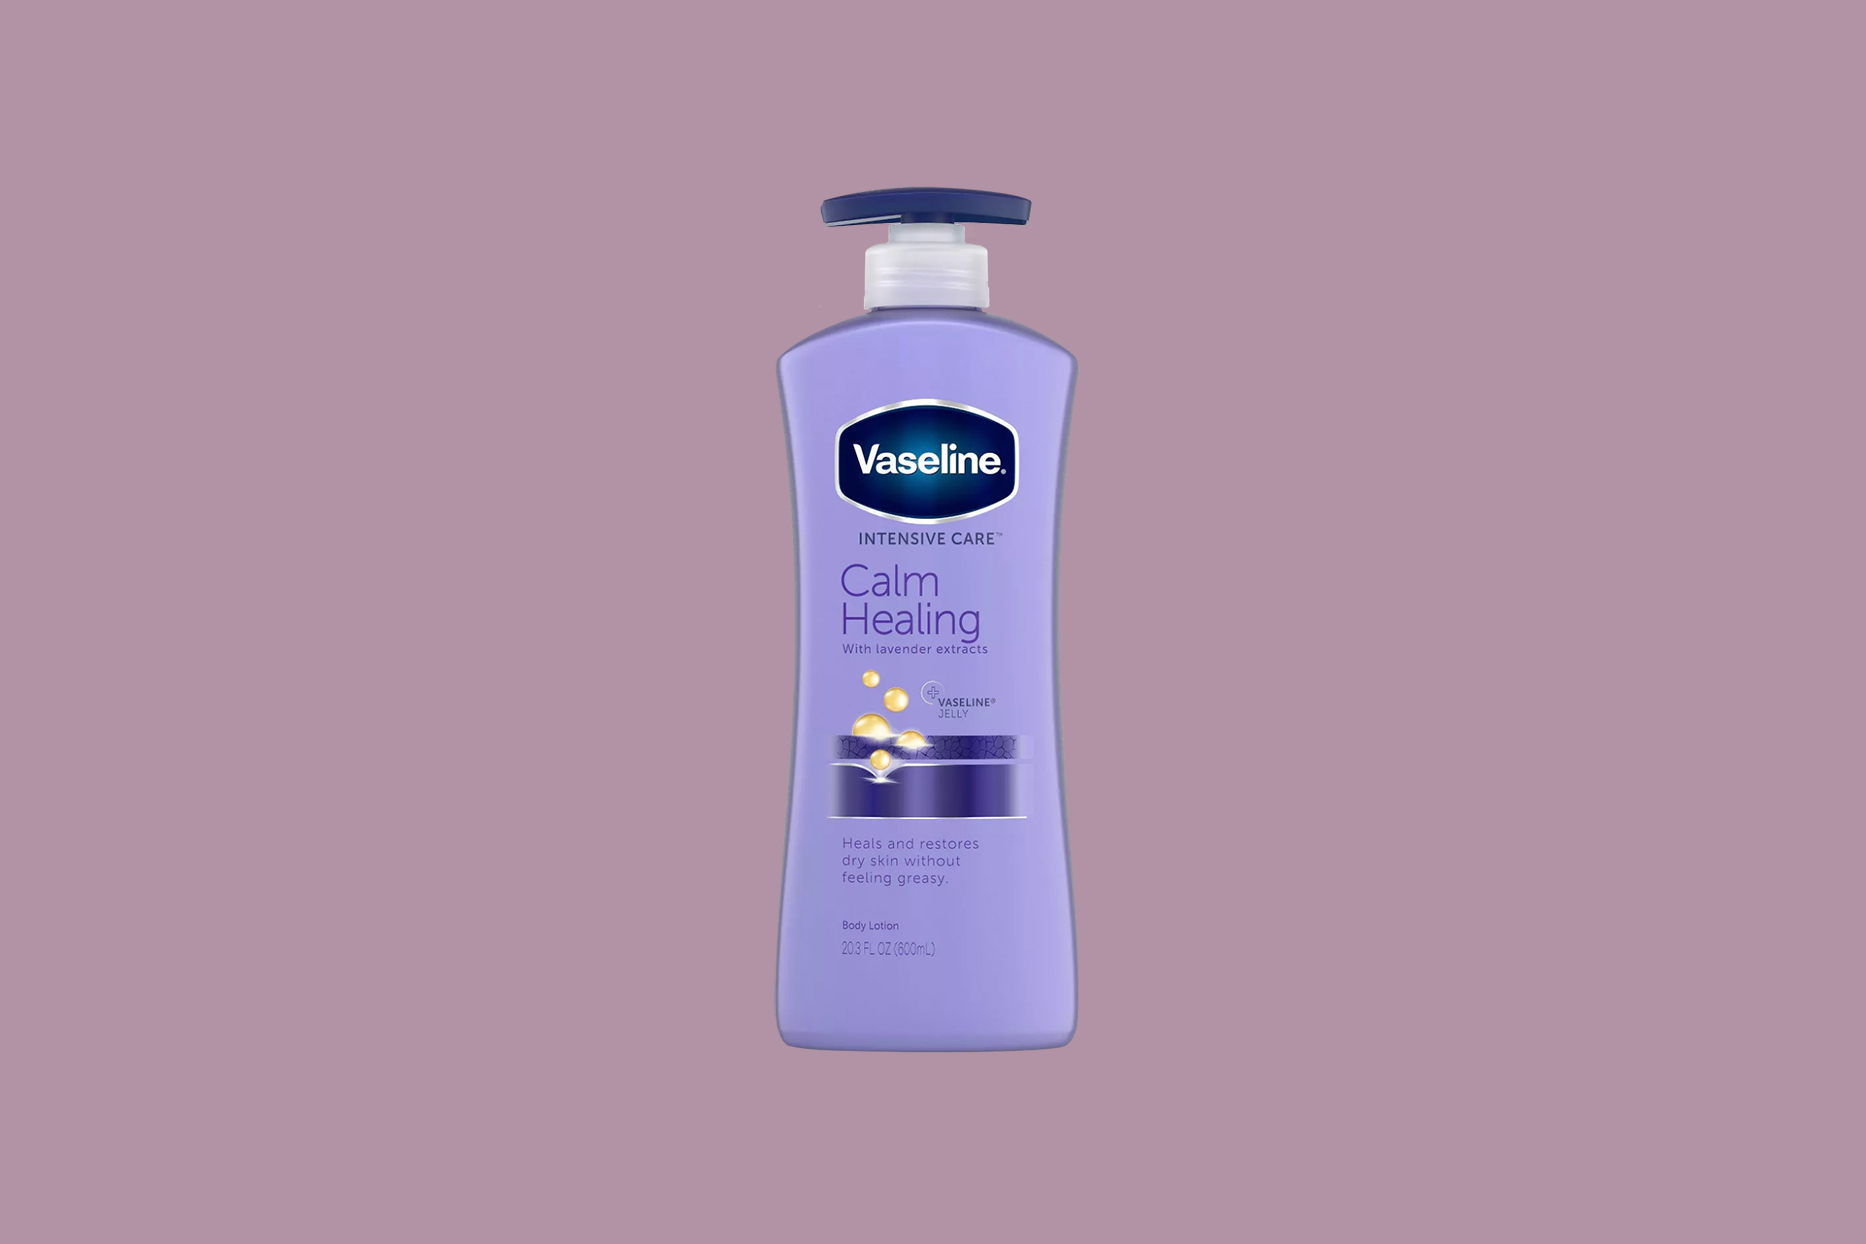 Vaseline Intensive Care Calm Healing Body Lotion